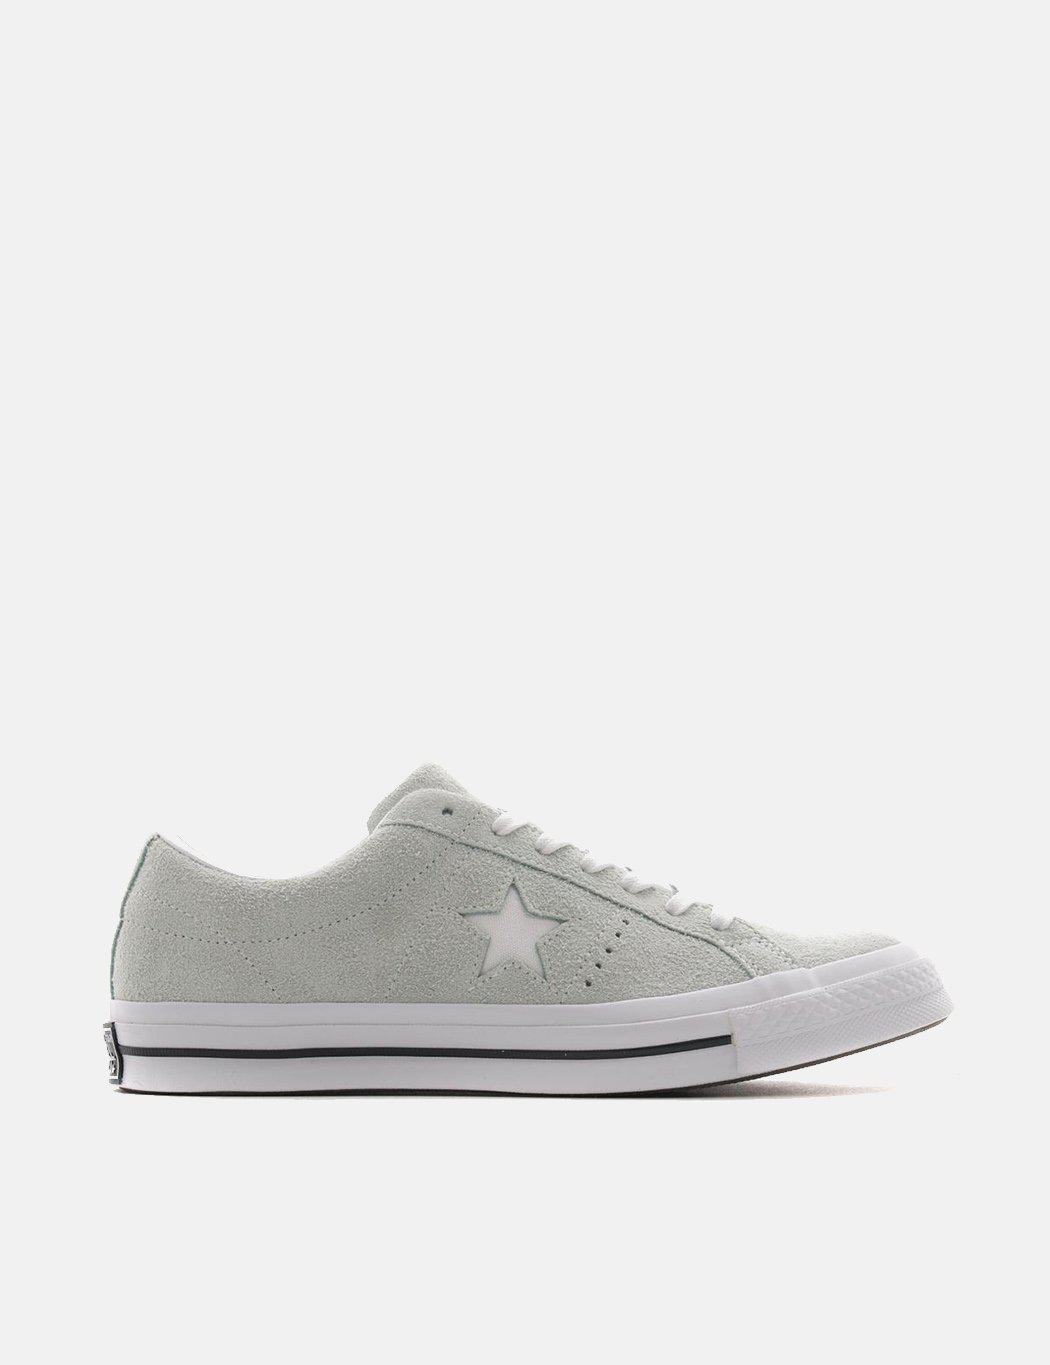 af458cfca2d011 Lyst - Converse One Star Ox Low Suede (159493c) in Green for Men